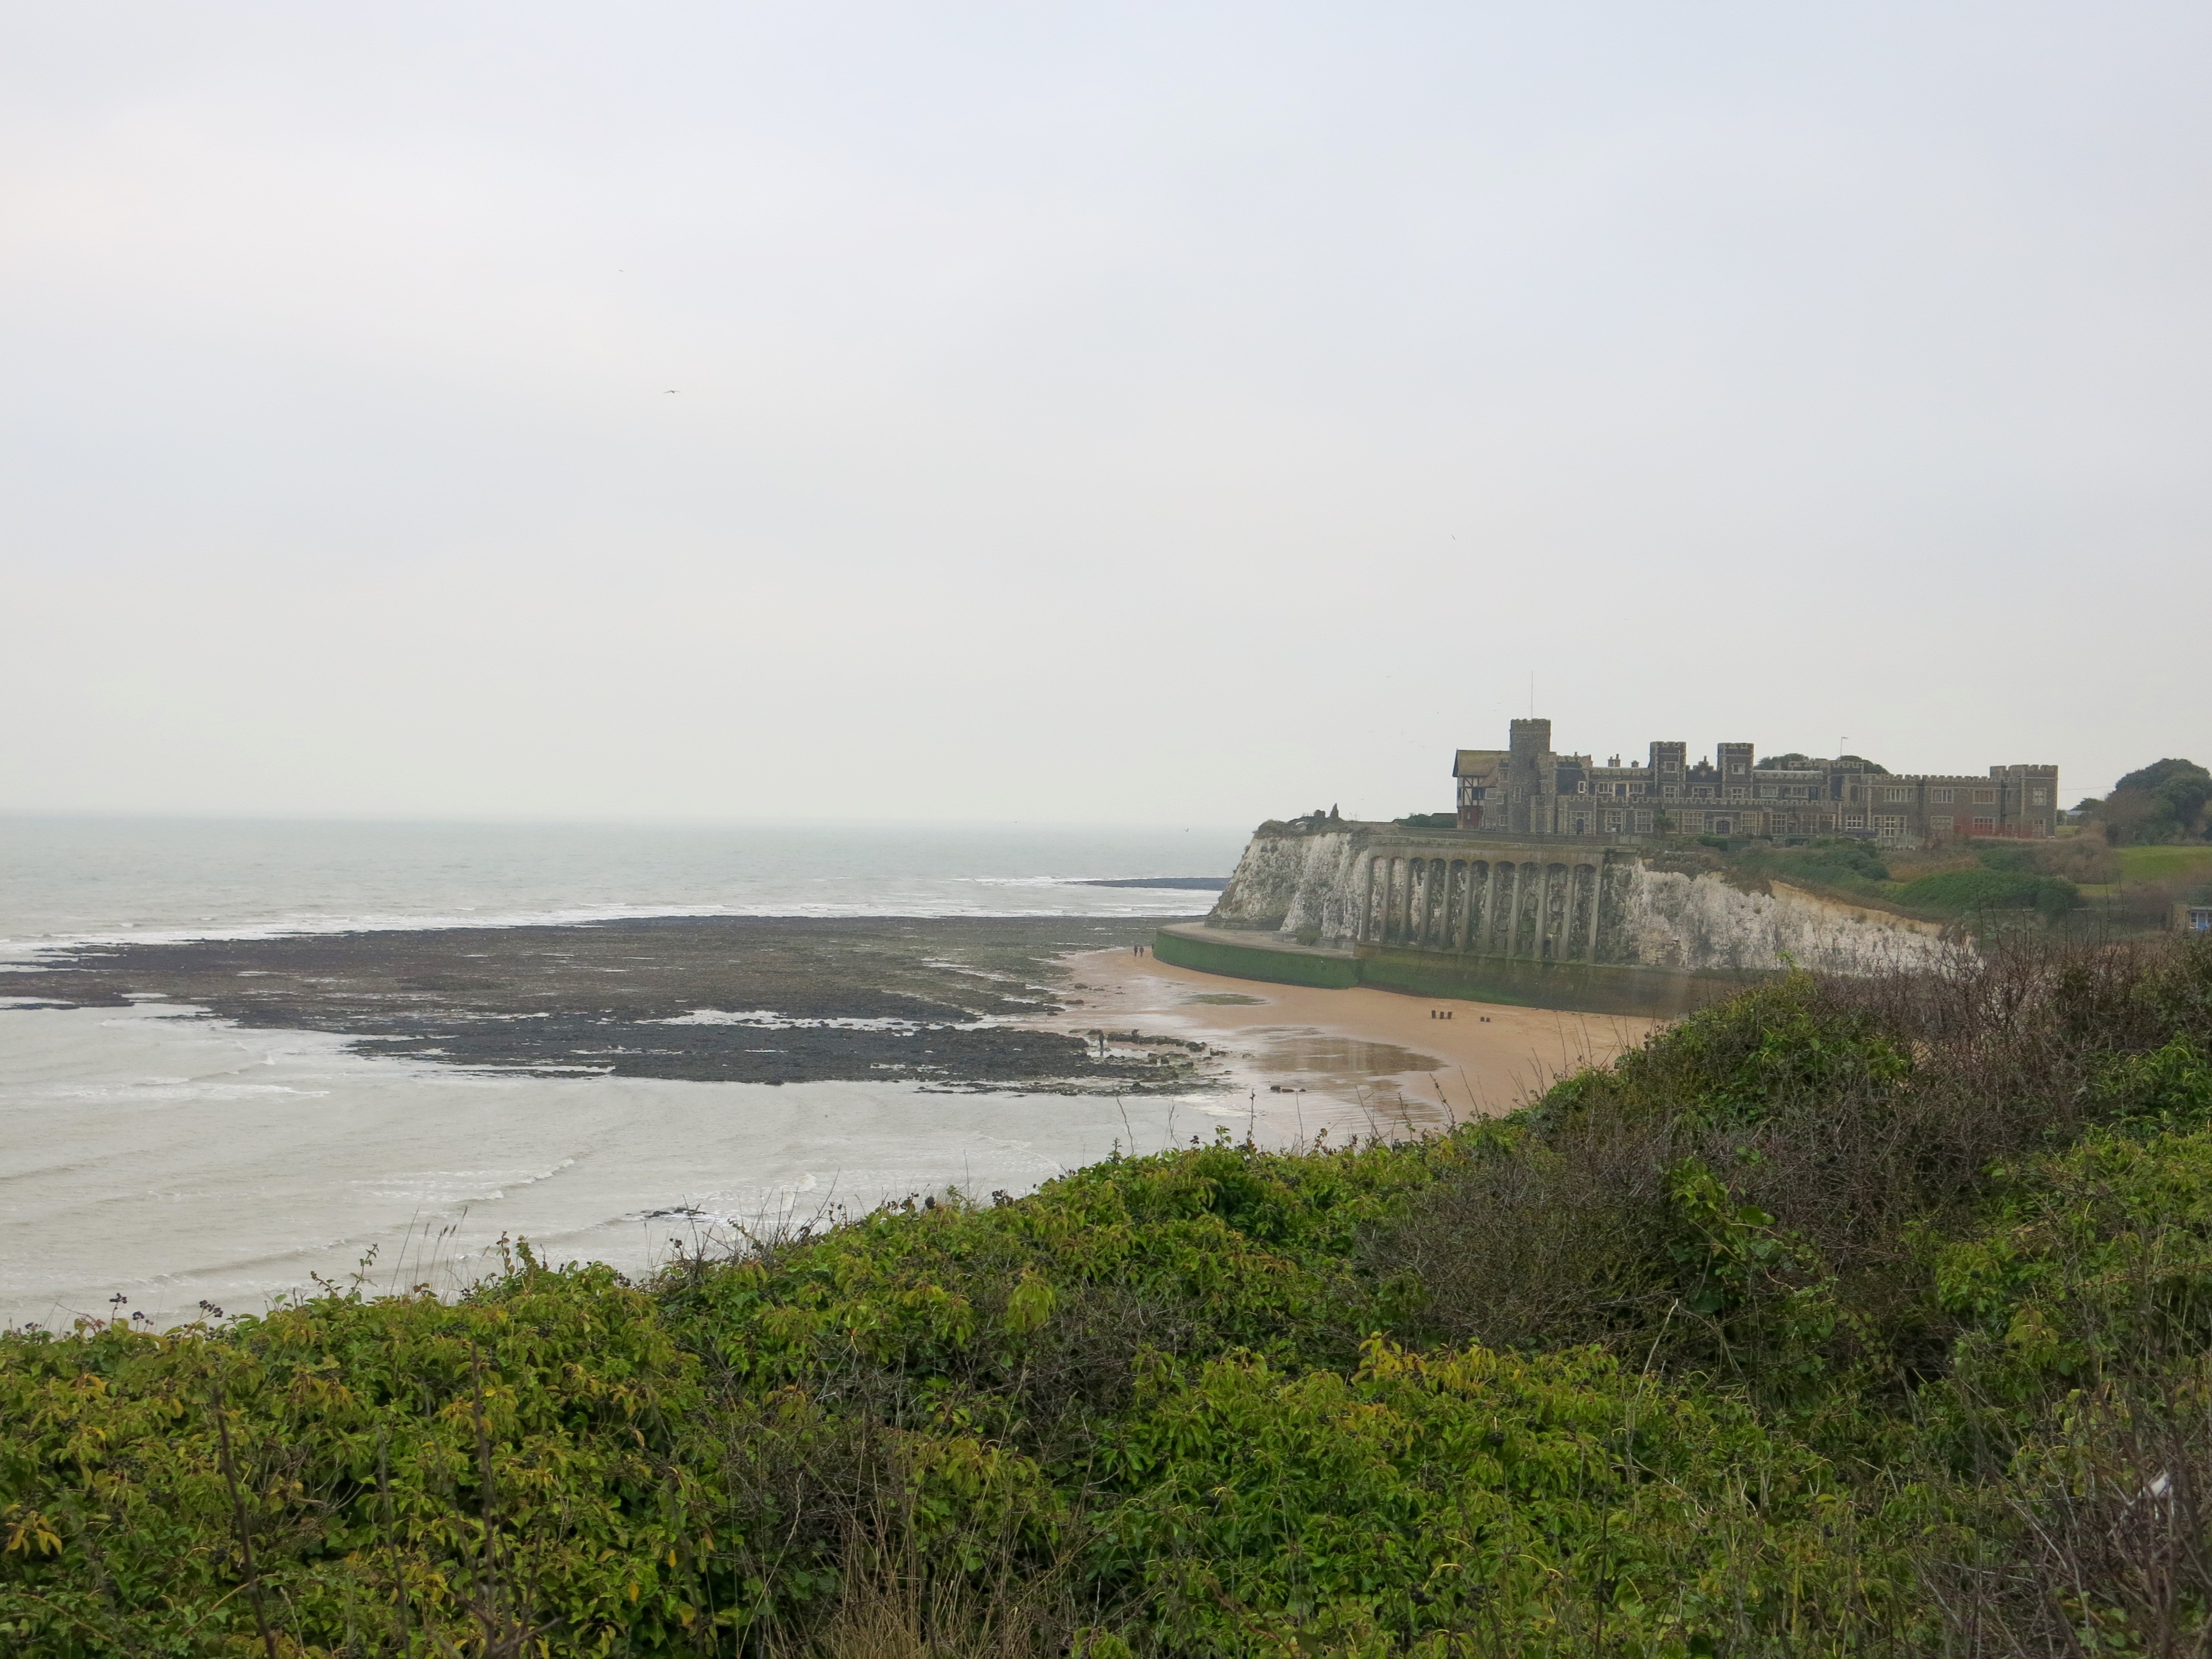 Ramsgate to Margate - 1 (14)